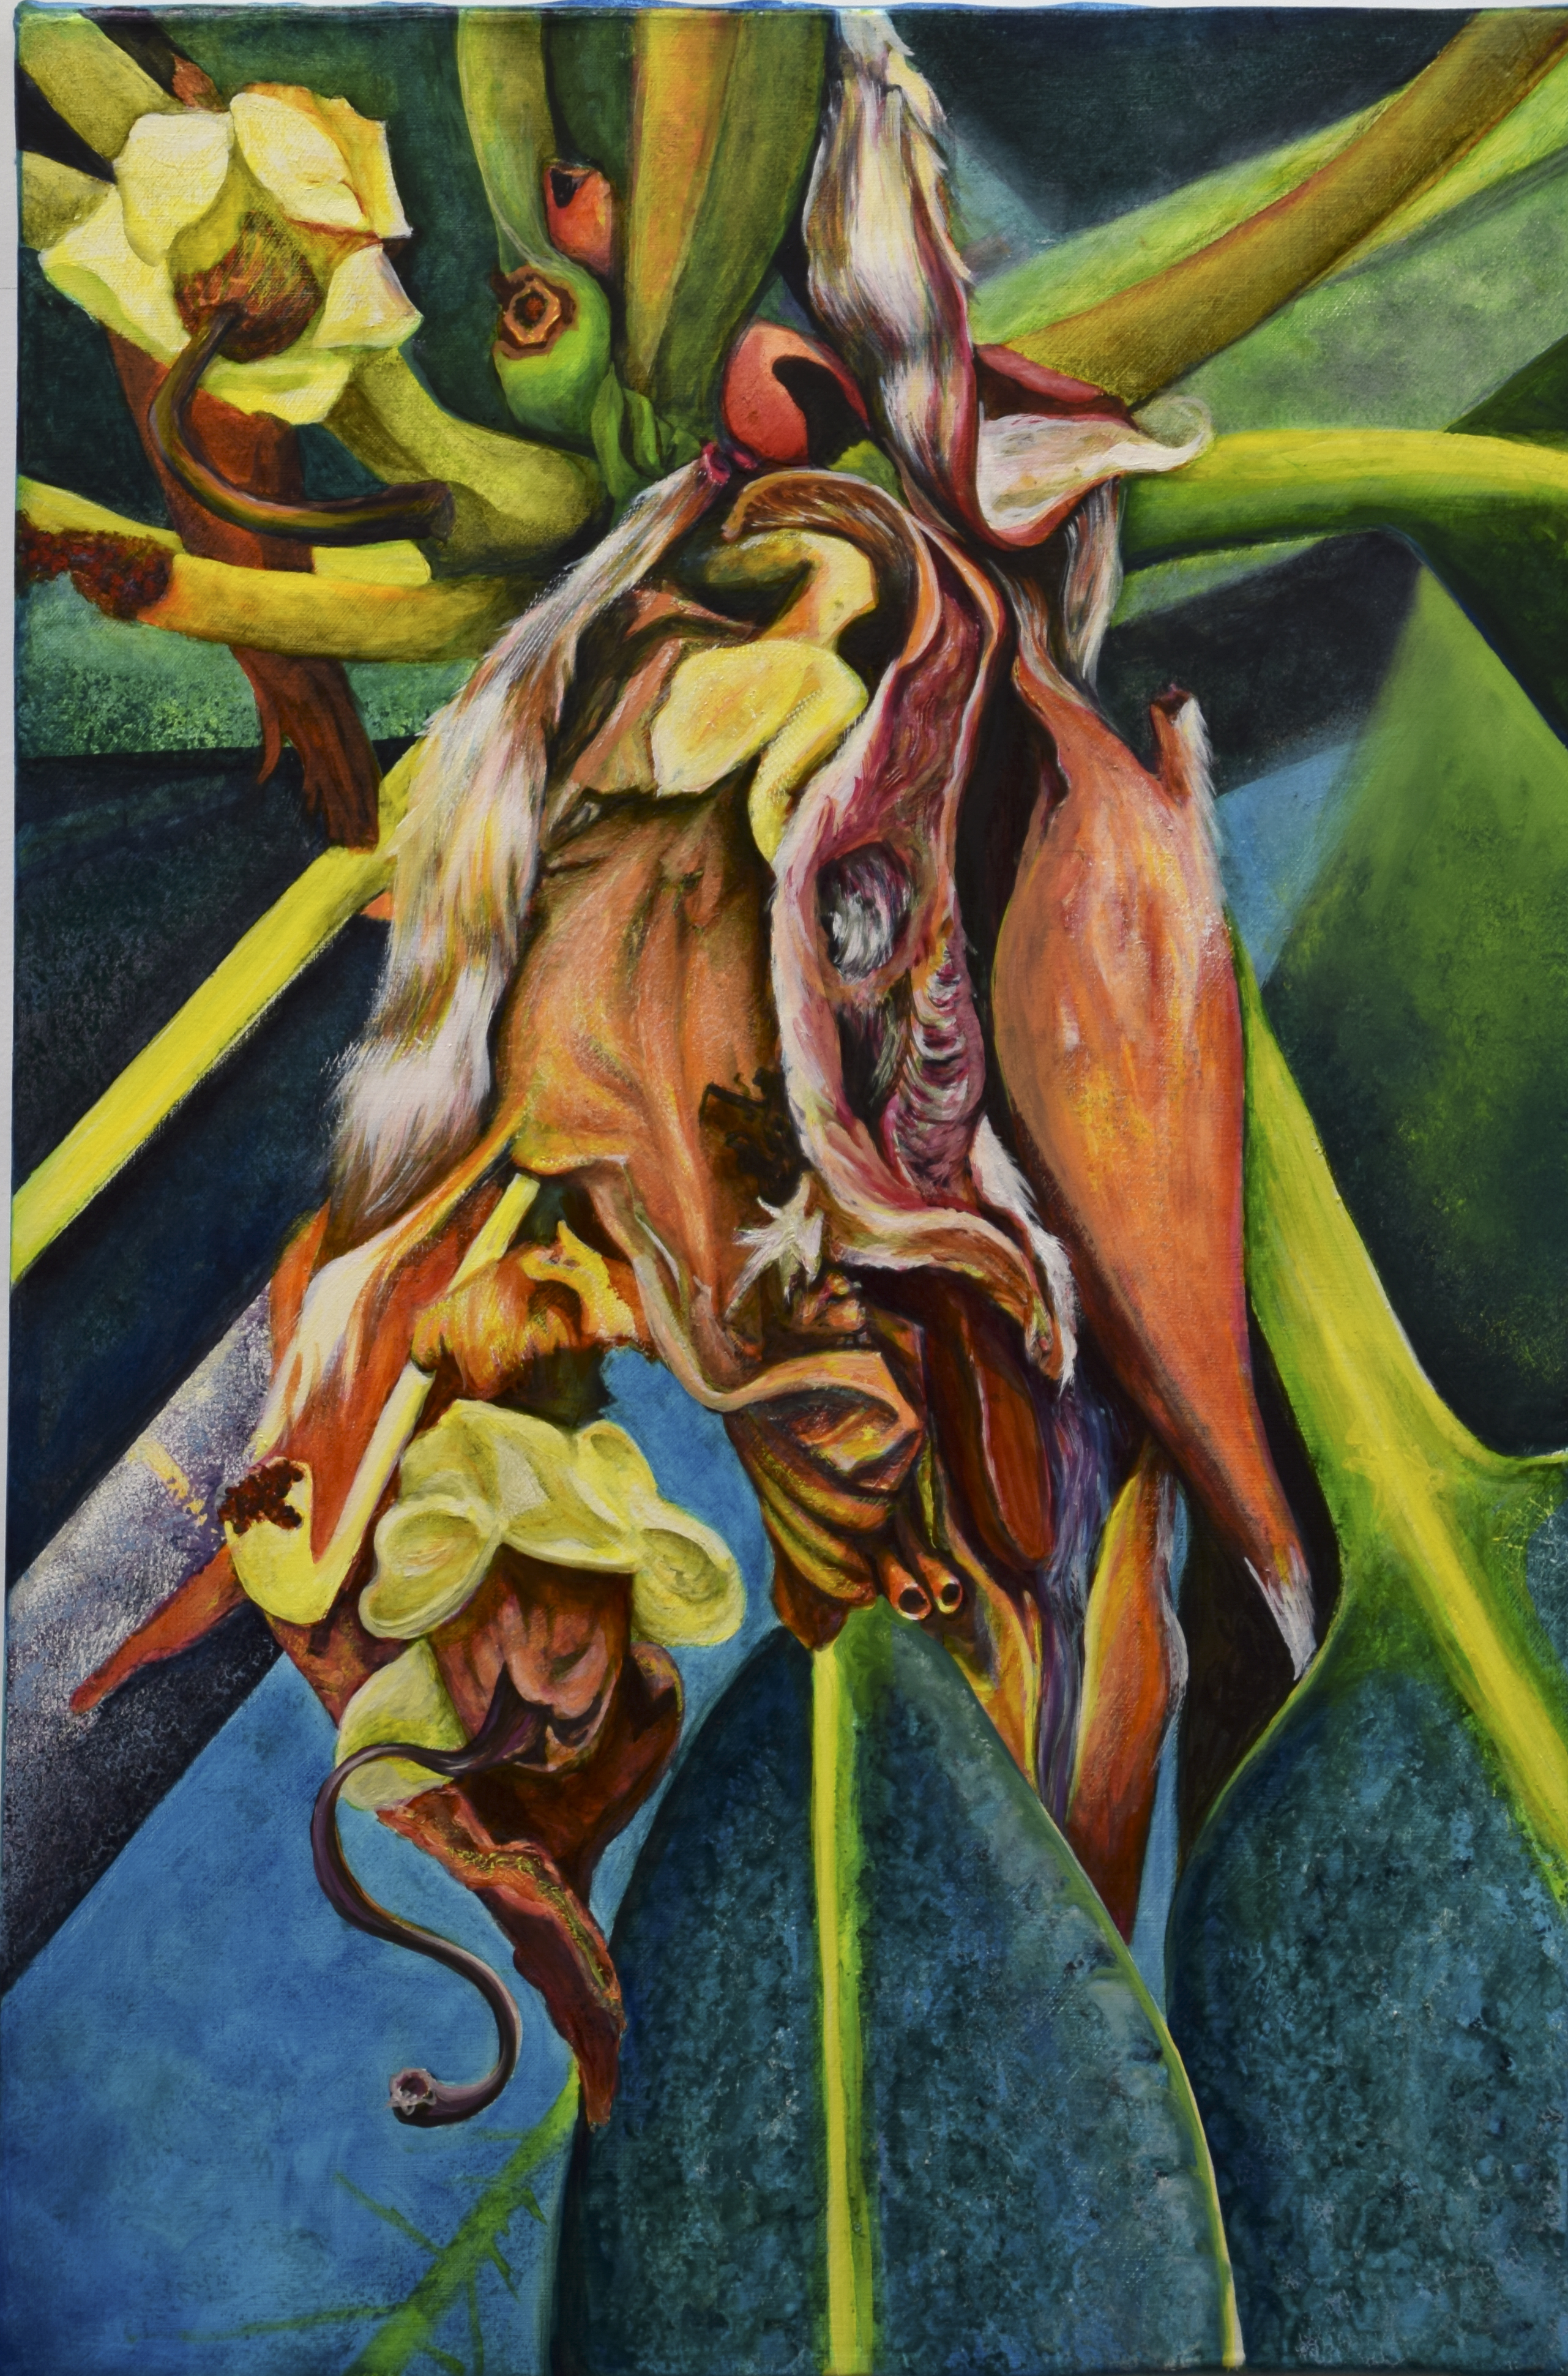 oil painting, dance of decay, endangered, regeneration, resiliency, nature pattern